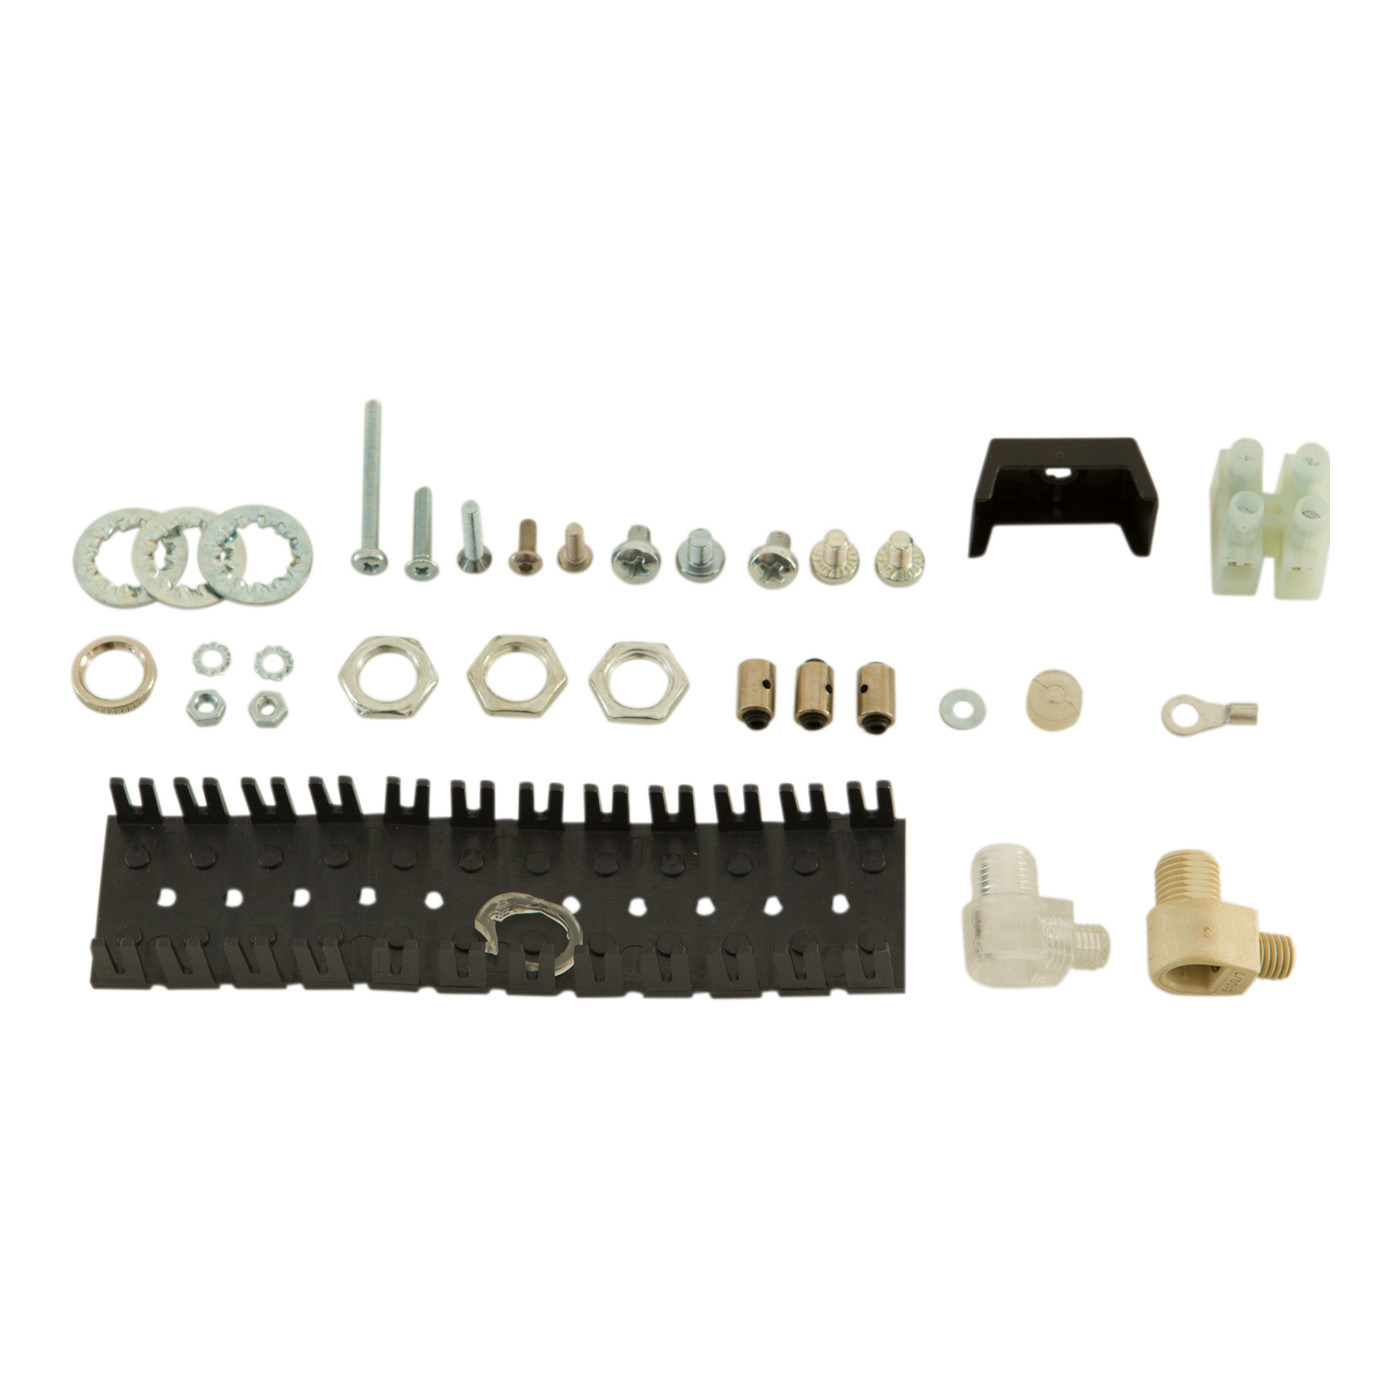 Artemide Pirce set of small replacement parts